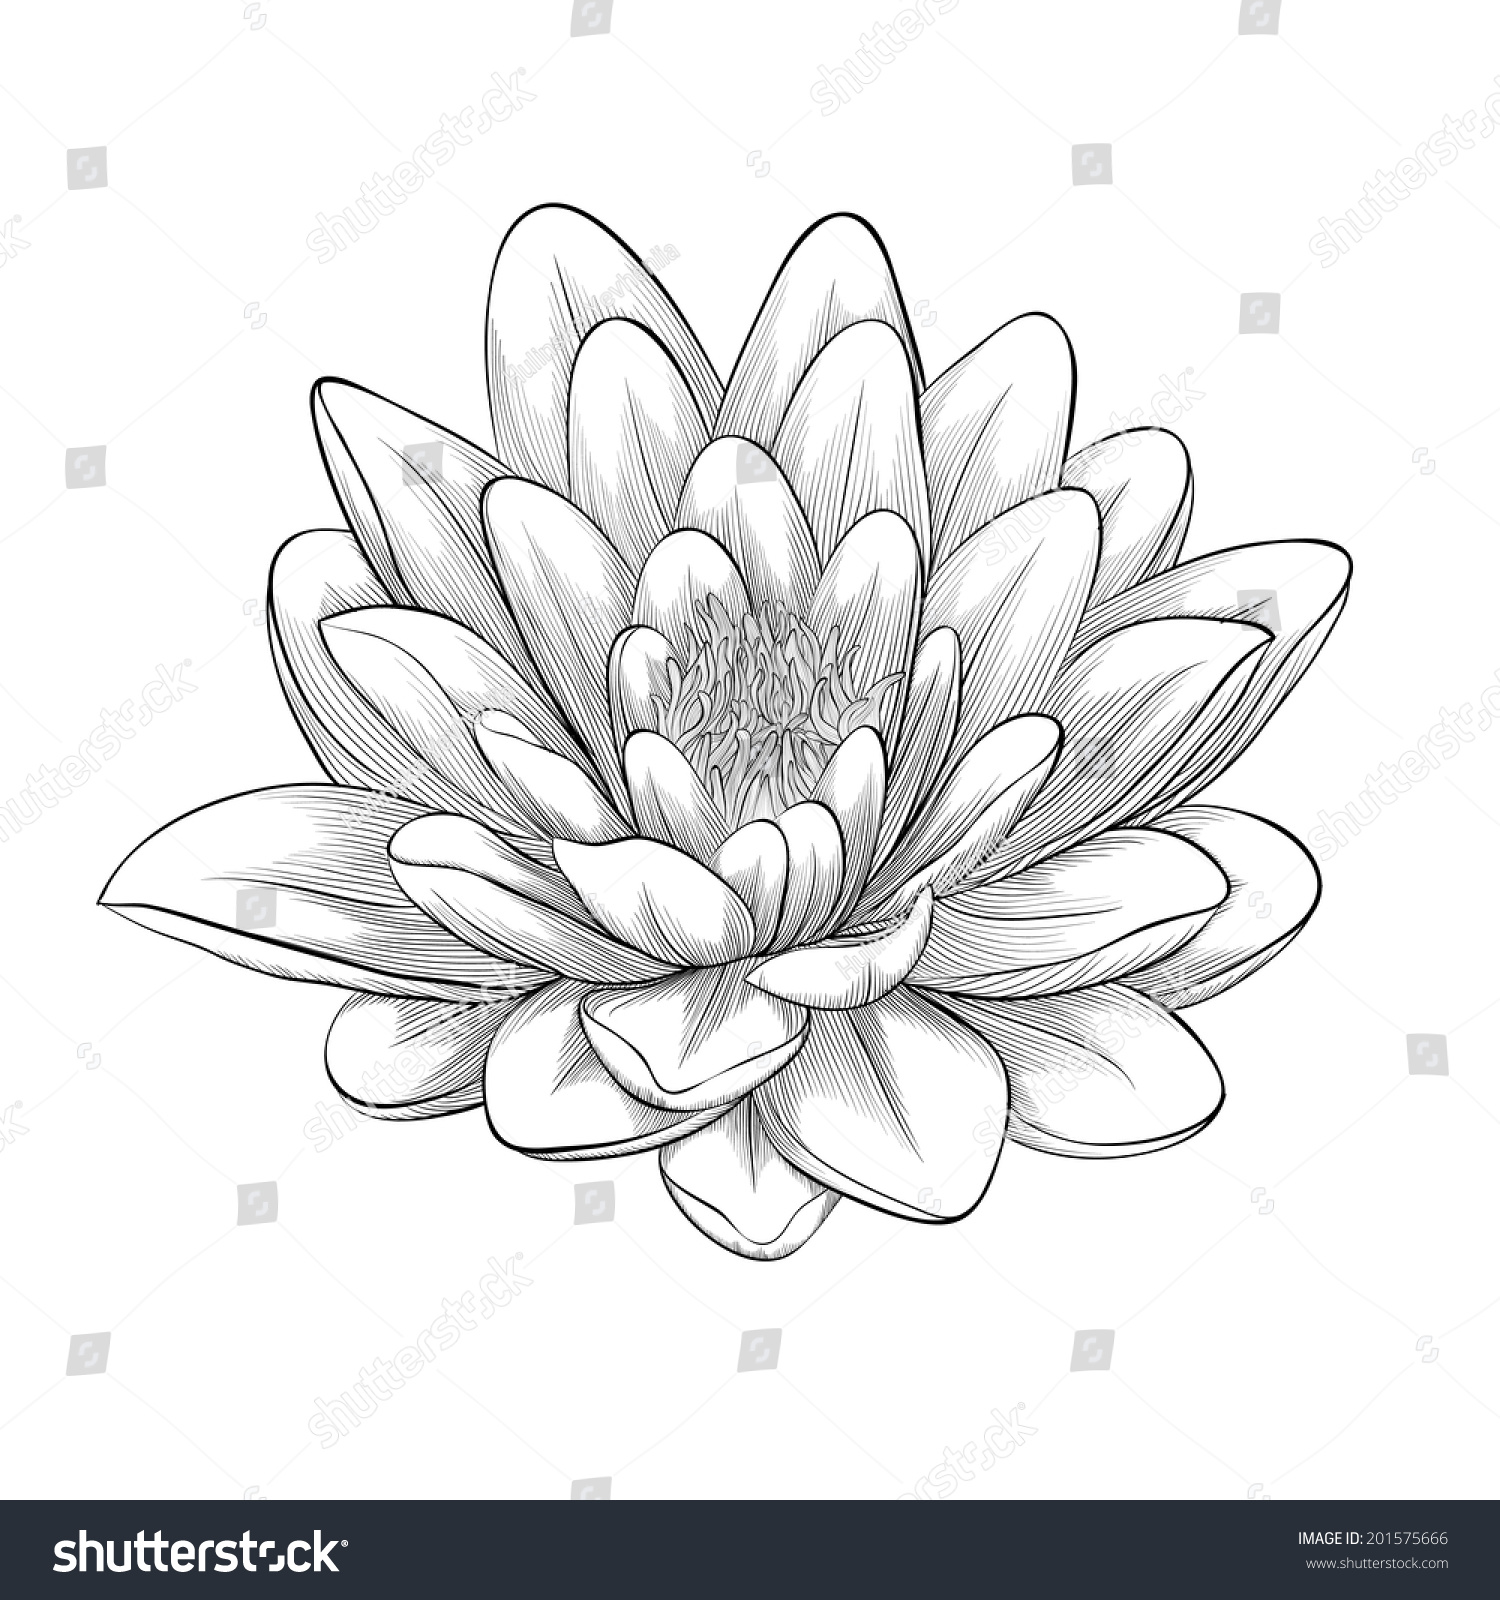 Lotus Flowers Icon The Black Line Drawn On A White Background Ez